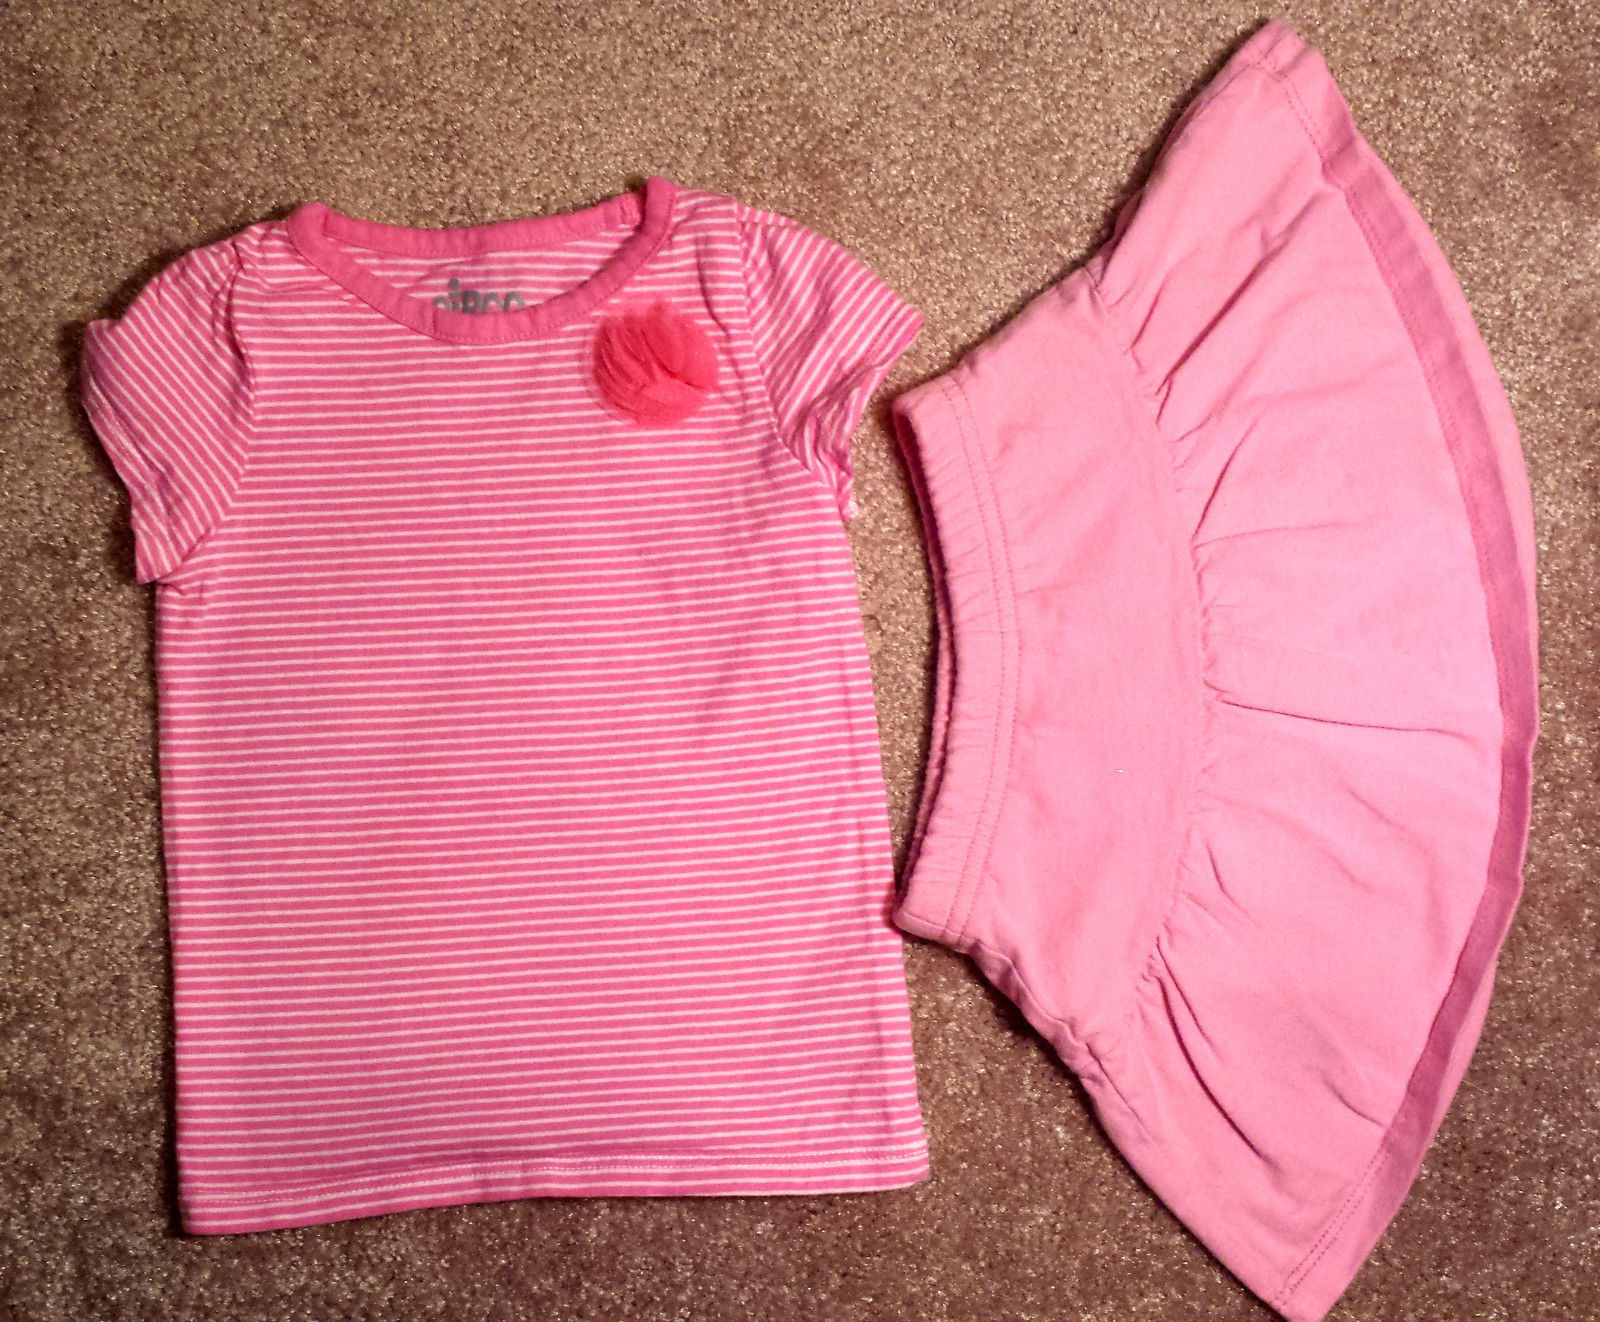 9bda26592 Girl's Size 12 M 9-12 Months 2 Pc Pink/ Wht and 19 similar items. S l1600